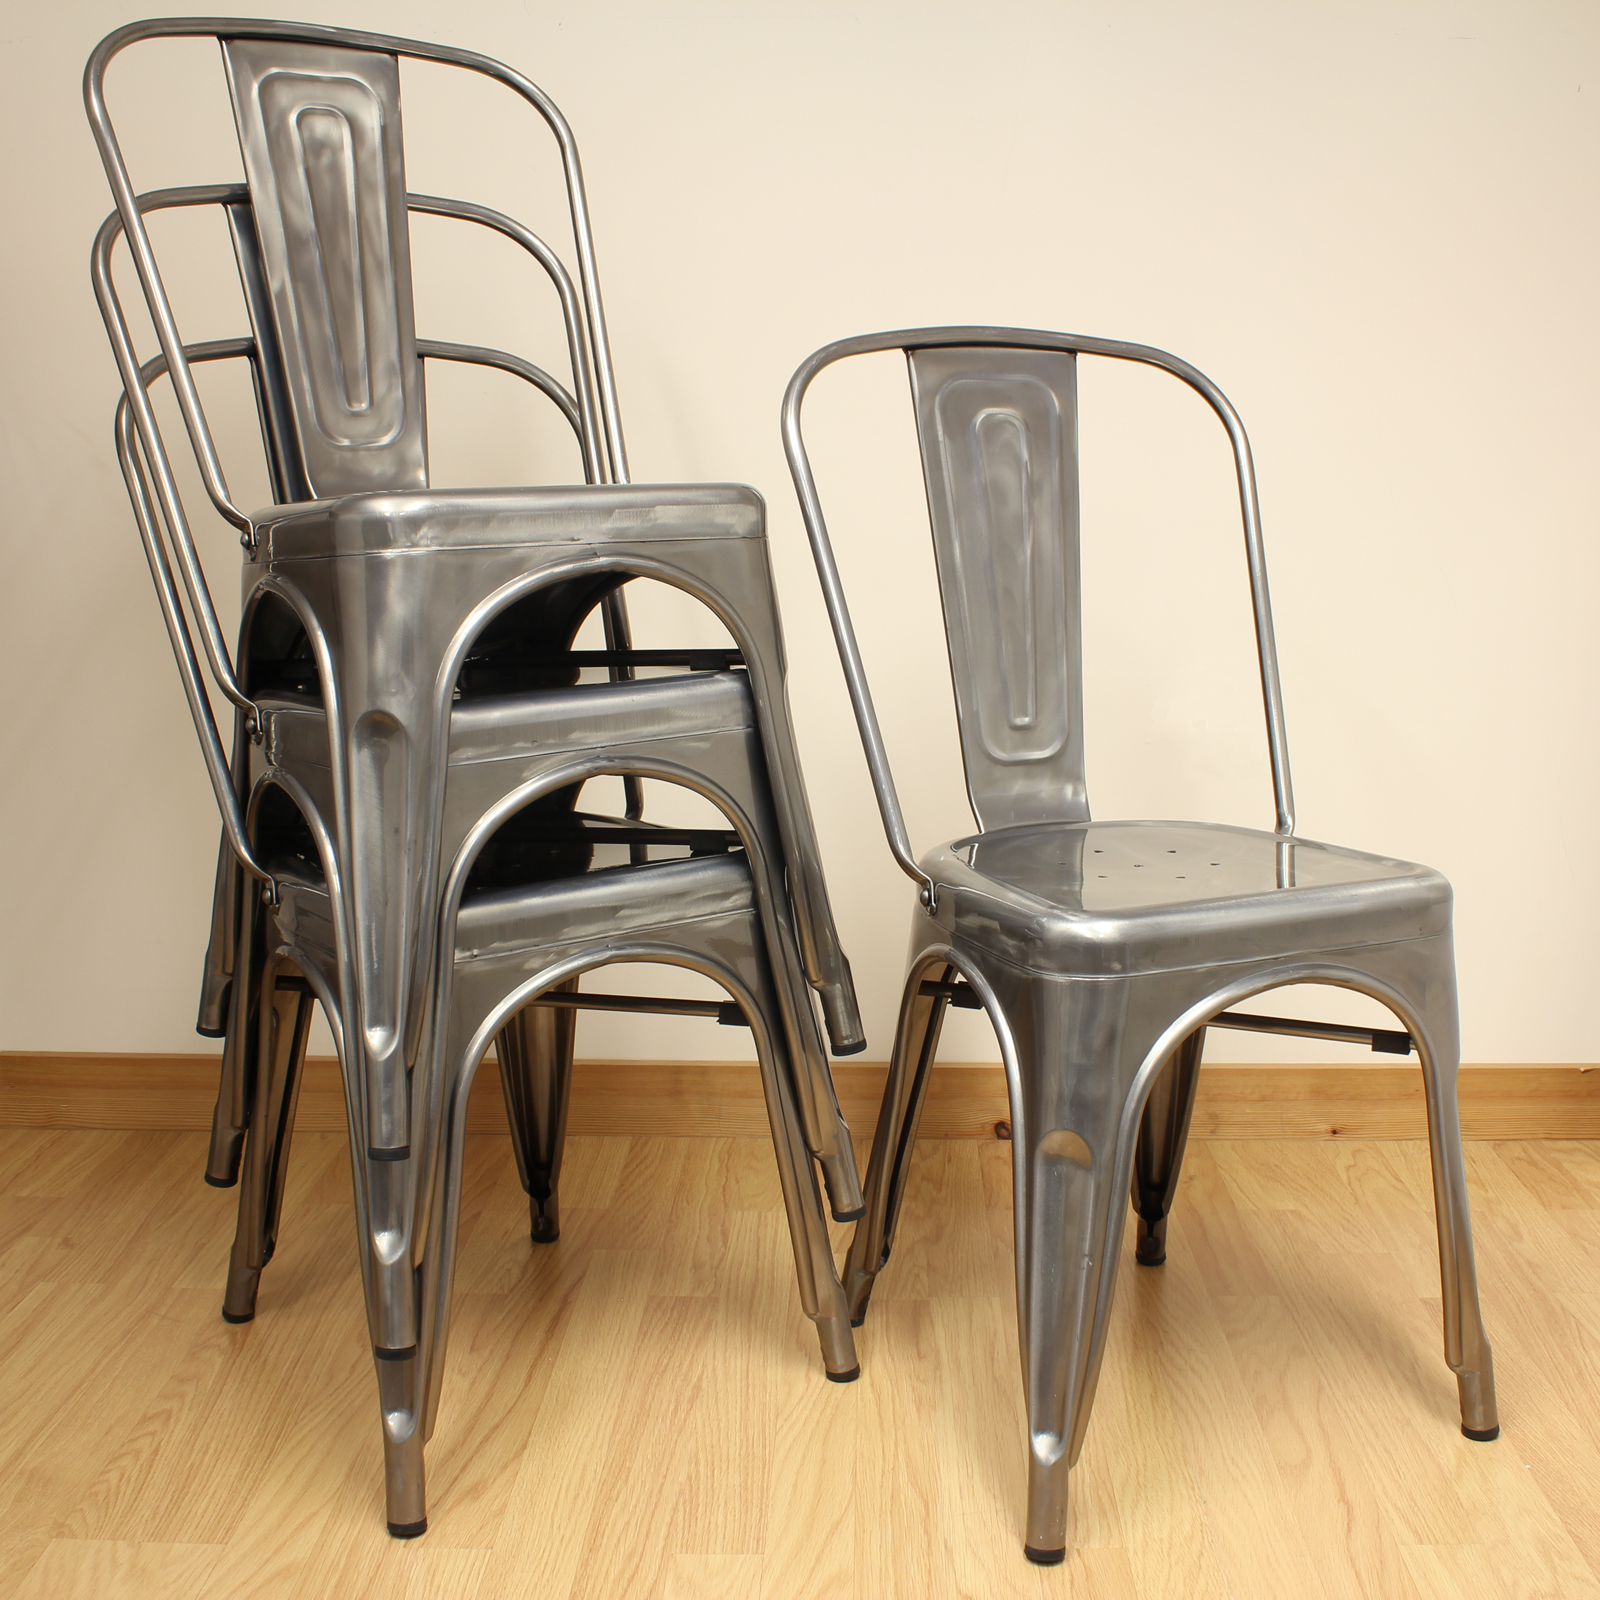 Set of 4 gunmetal metal industrial dining chair kitchen for Kitchen set industrial